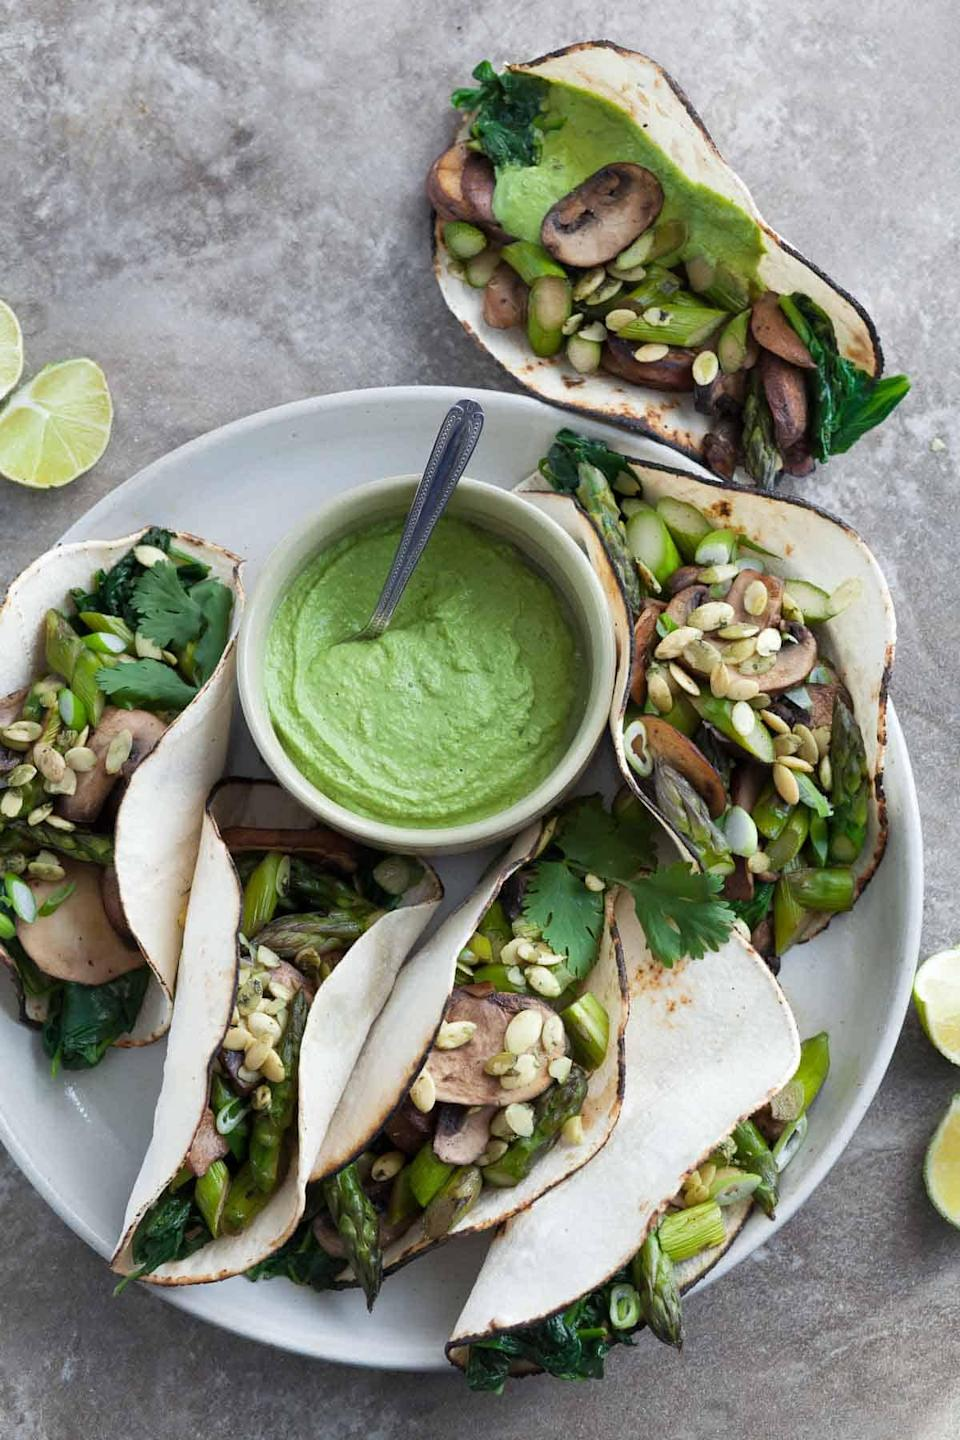 """<p>All the green goodness—asparagus, spinach, jalepeño, cilantro—packs these tacos with bright and fresh flavor. </p> <p>Get the recipe <a href=""""https://gourmandeinthekitchen.com/mushroom-asparagus-tacos-with-jalapeno-cashew-crema-paleo-vegan/"""" rel=""""nofollow noopener"""" target=""""_blank"""" data-ylk=""""slk:here"""" class=""""link rapid-noclick-resp"""">here</a>.</p>"""